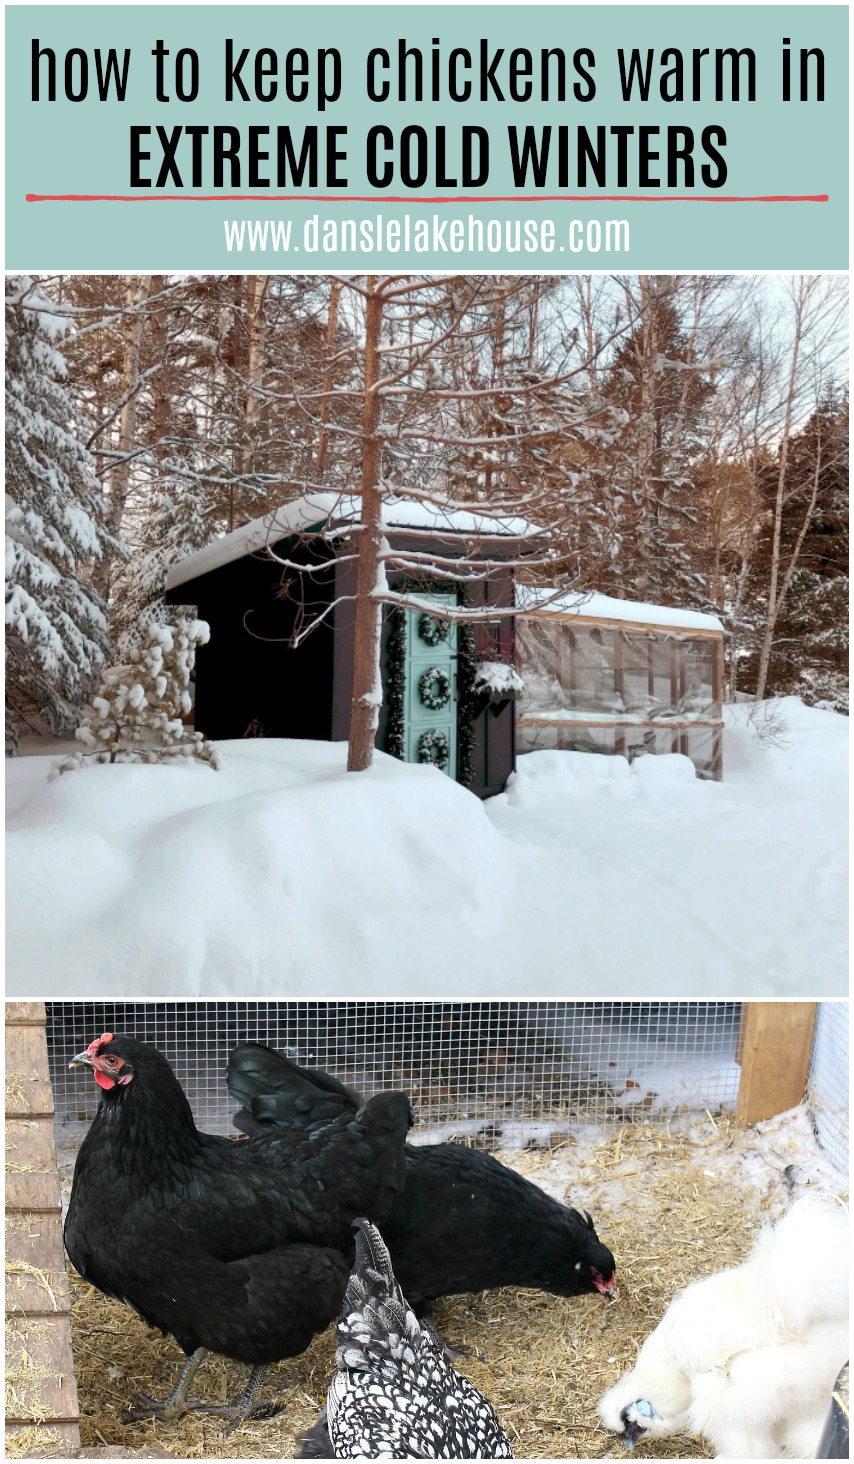 how to keep chickens warm in extreme cold winters